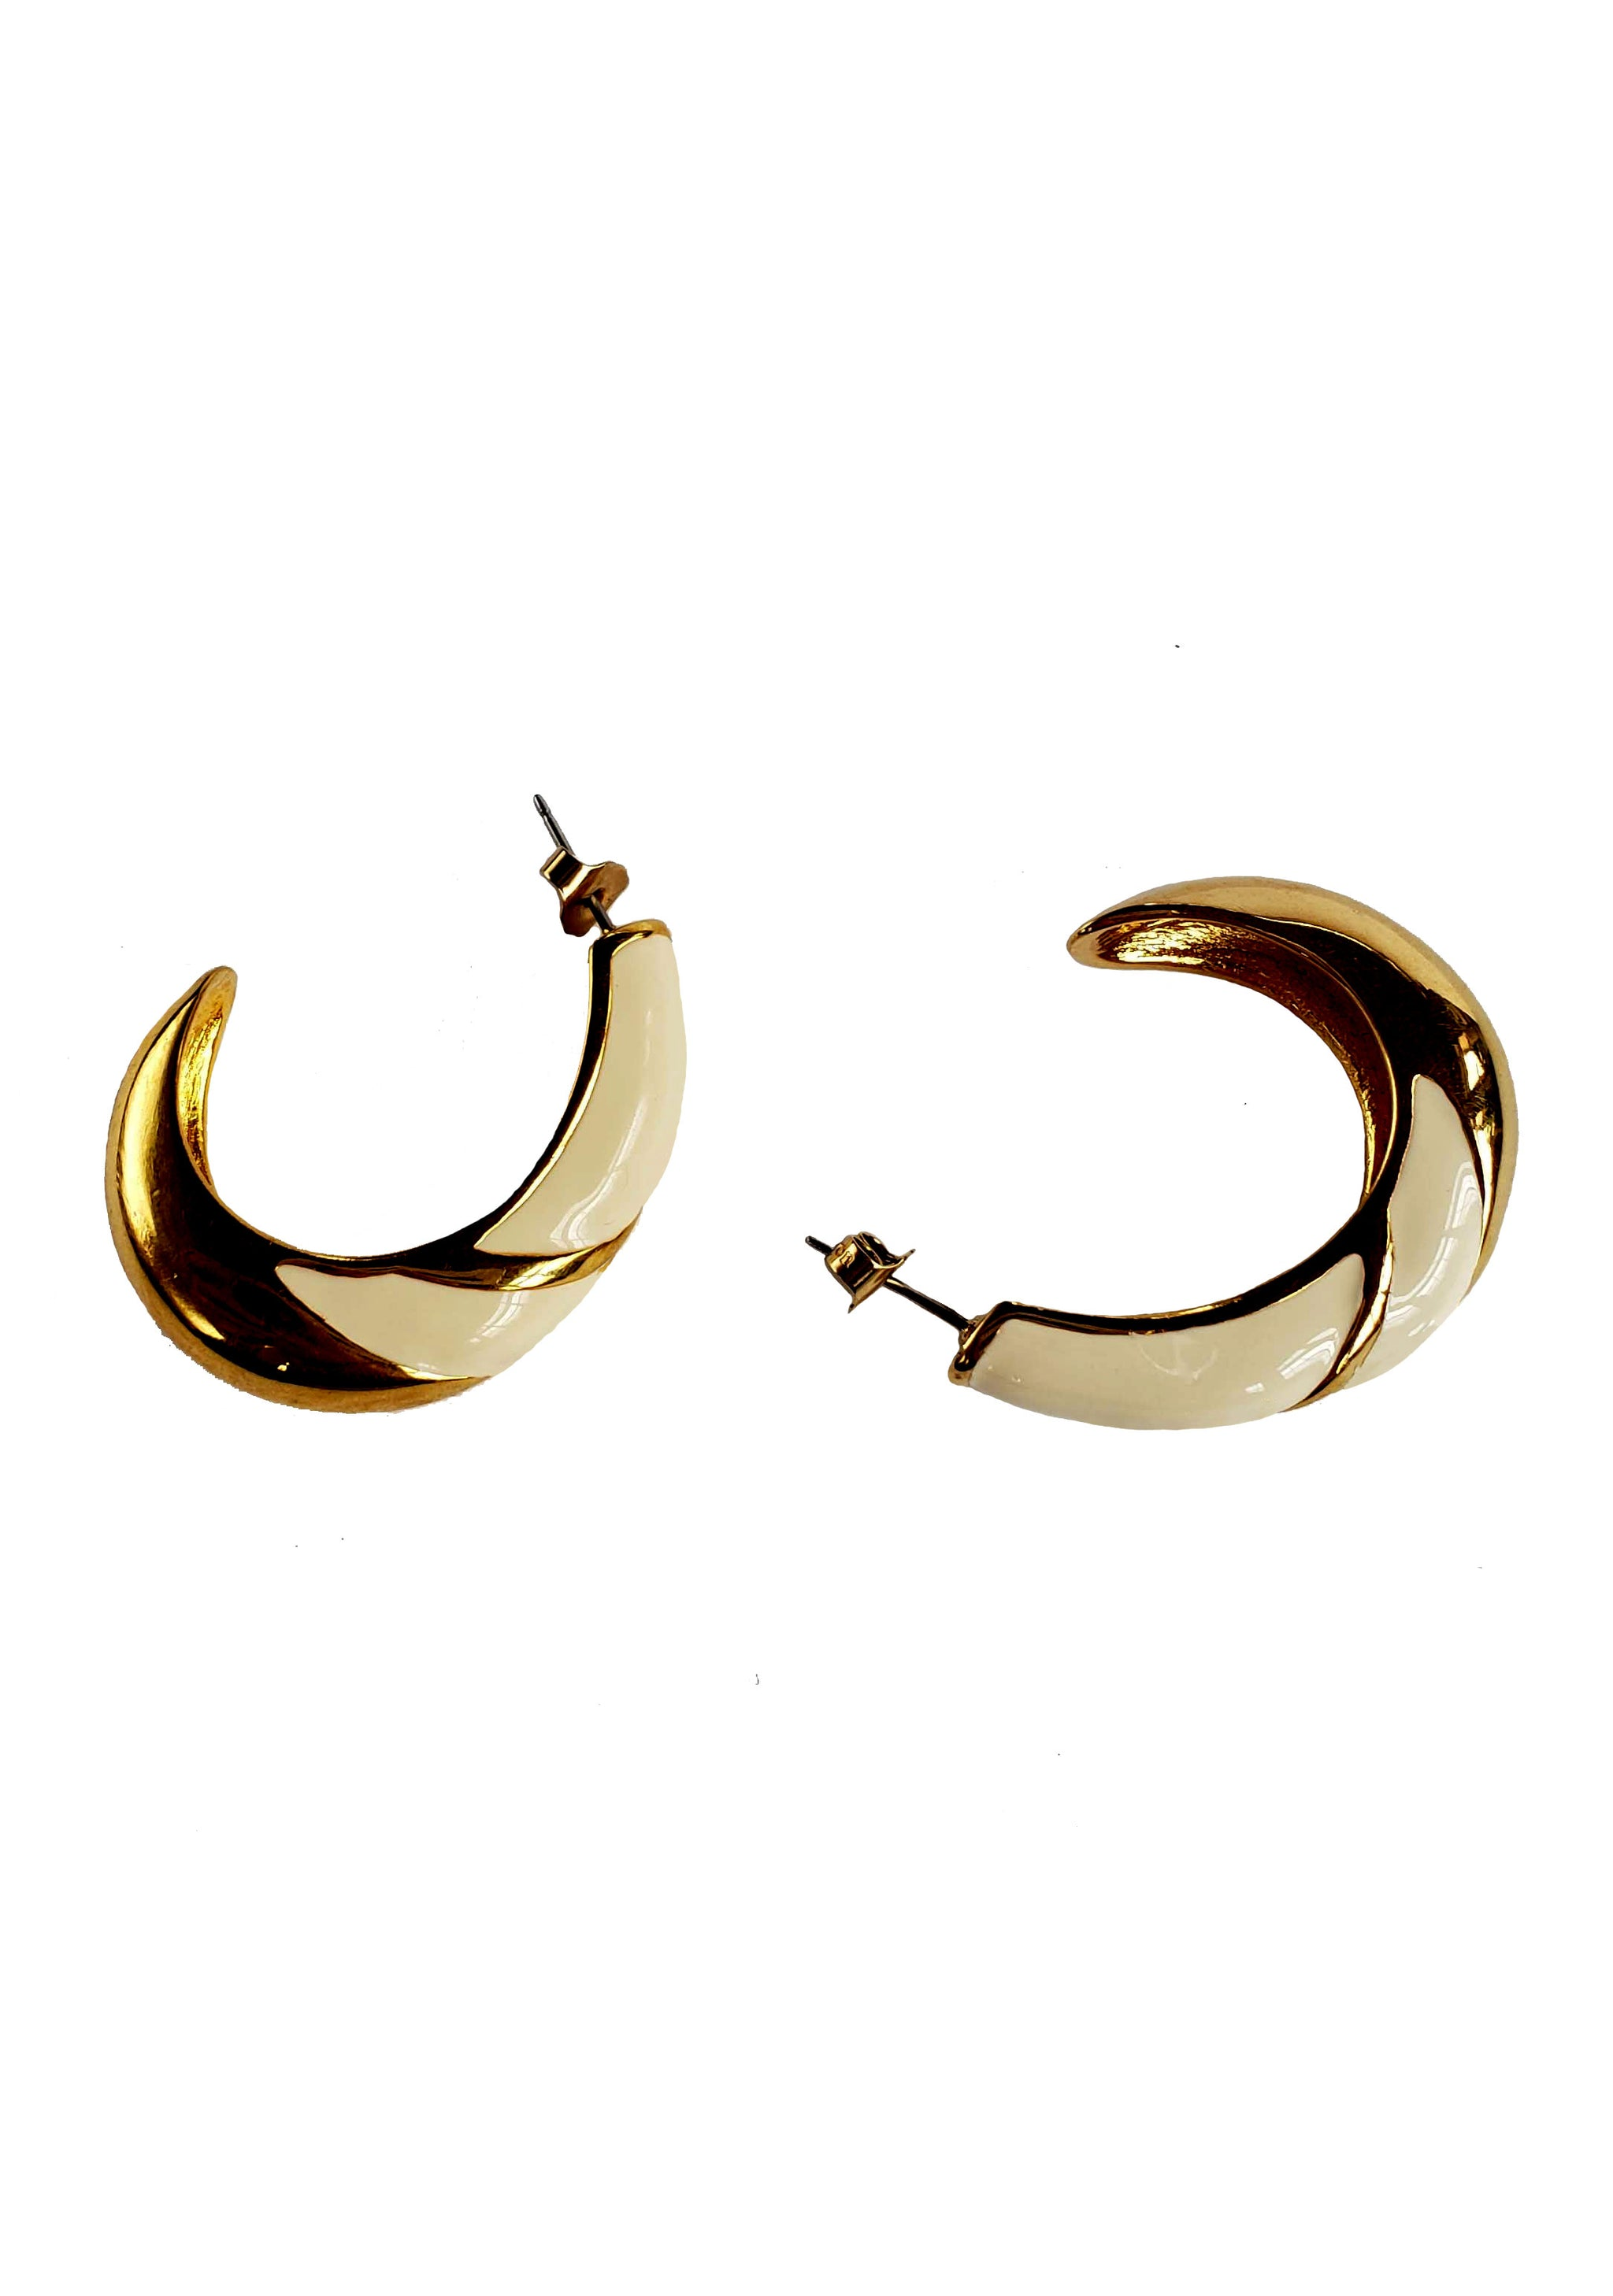 80s Cream & Gold Enamel Scoop Earrings